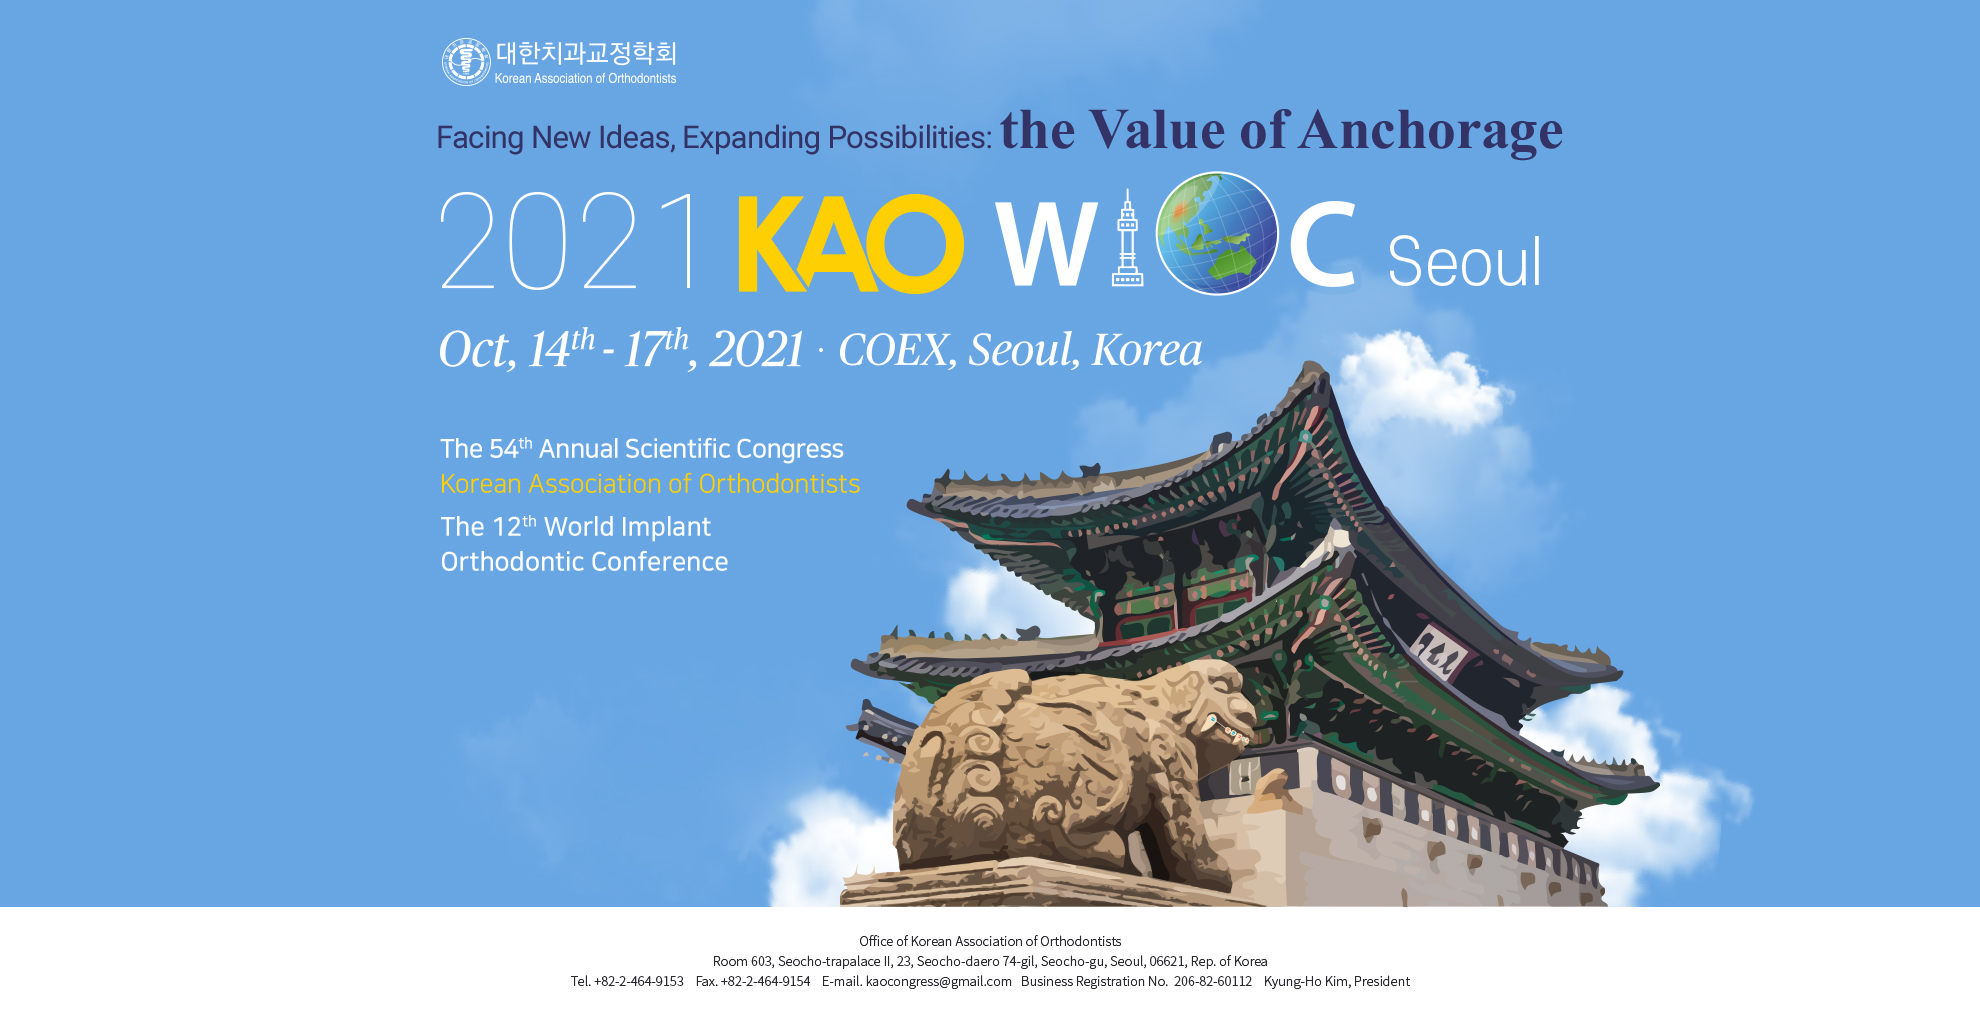 Facing New Ideas, Expanding Possibilityes: the Value of Anchorage. 2021 KAO WIOC Seoul.